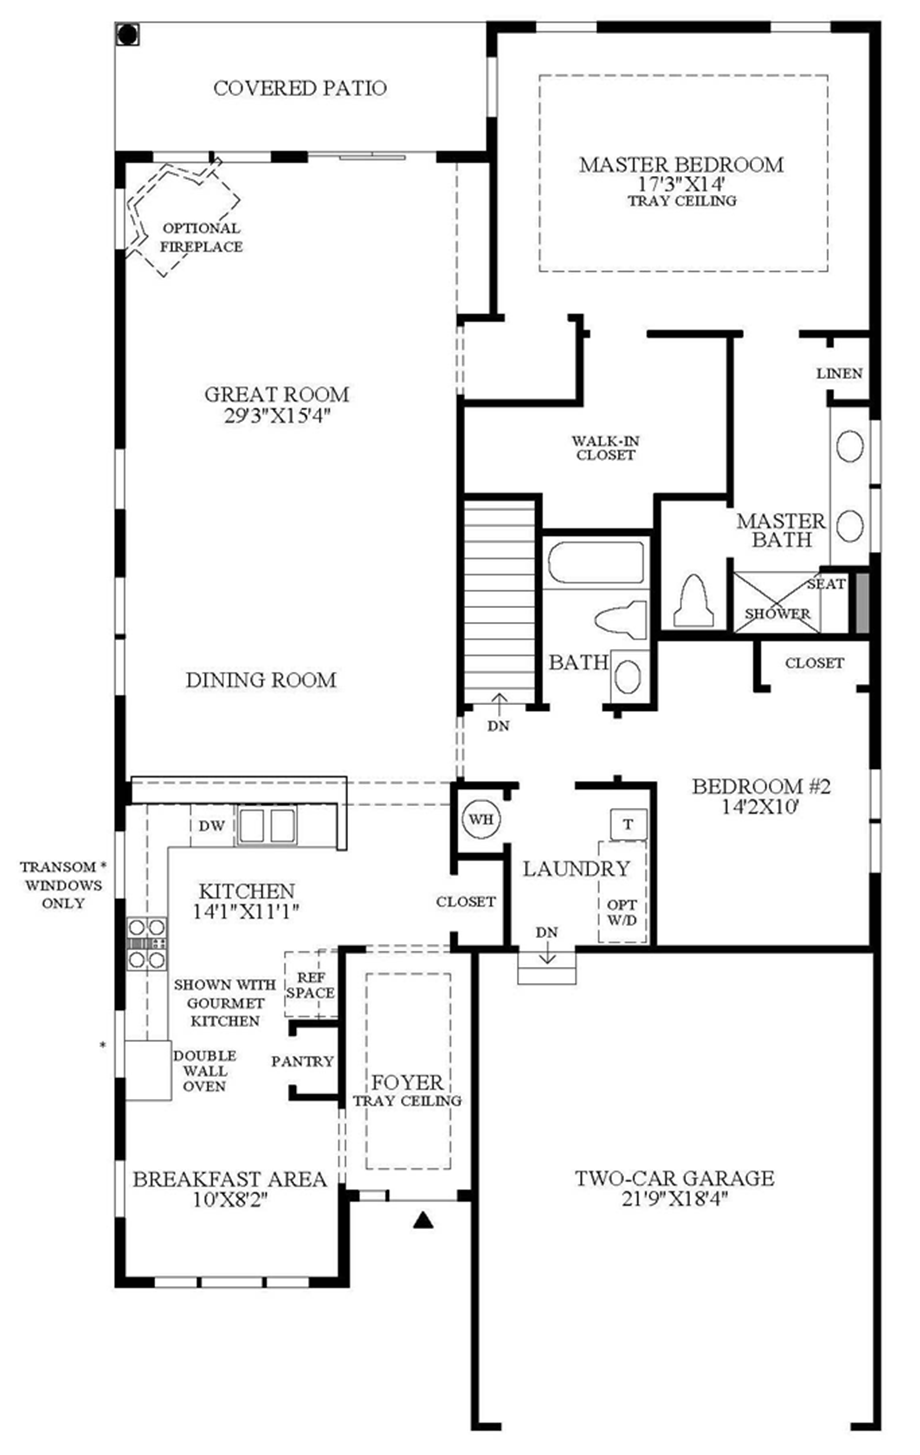 Bd820811a921de37 Old Narrow Lot House Plans Narrow Lot House Plans furthermore 240251 additionally 10028 further 720 Square Feet 2 Bedrooms 1 Bathroom Ranch House Plans 0 Garage 10301 furthermore 17 Metre Wide Home Designs. on home plans by lot size